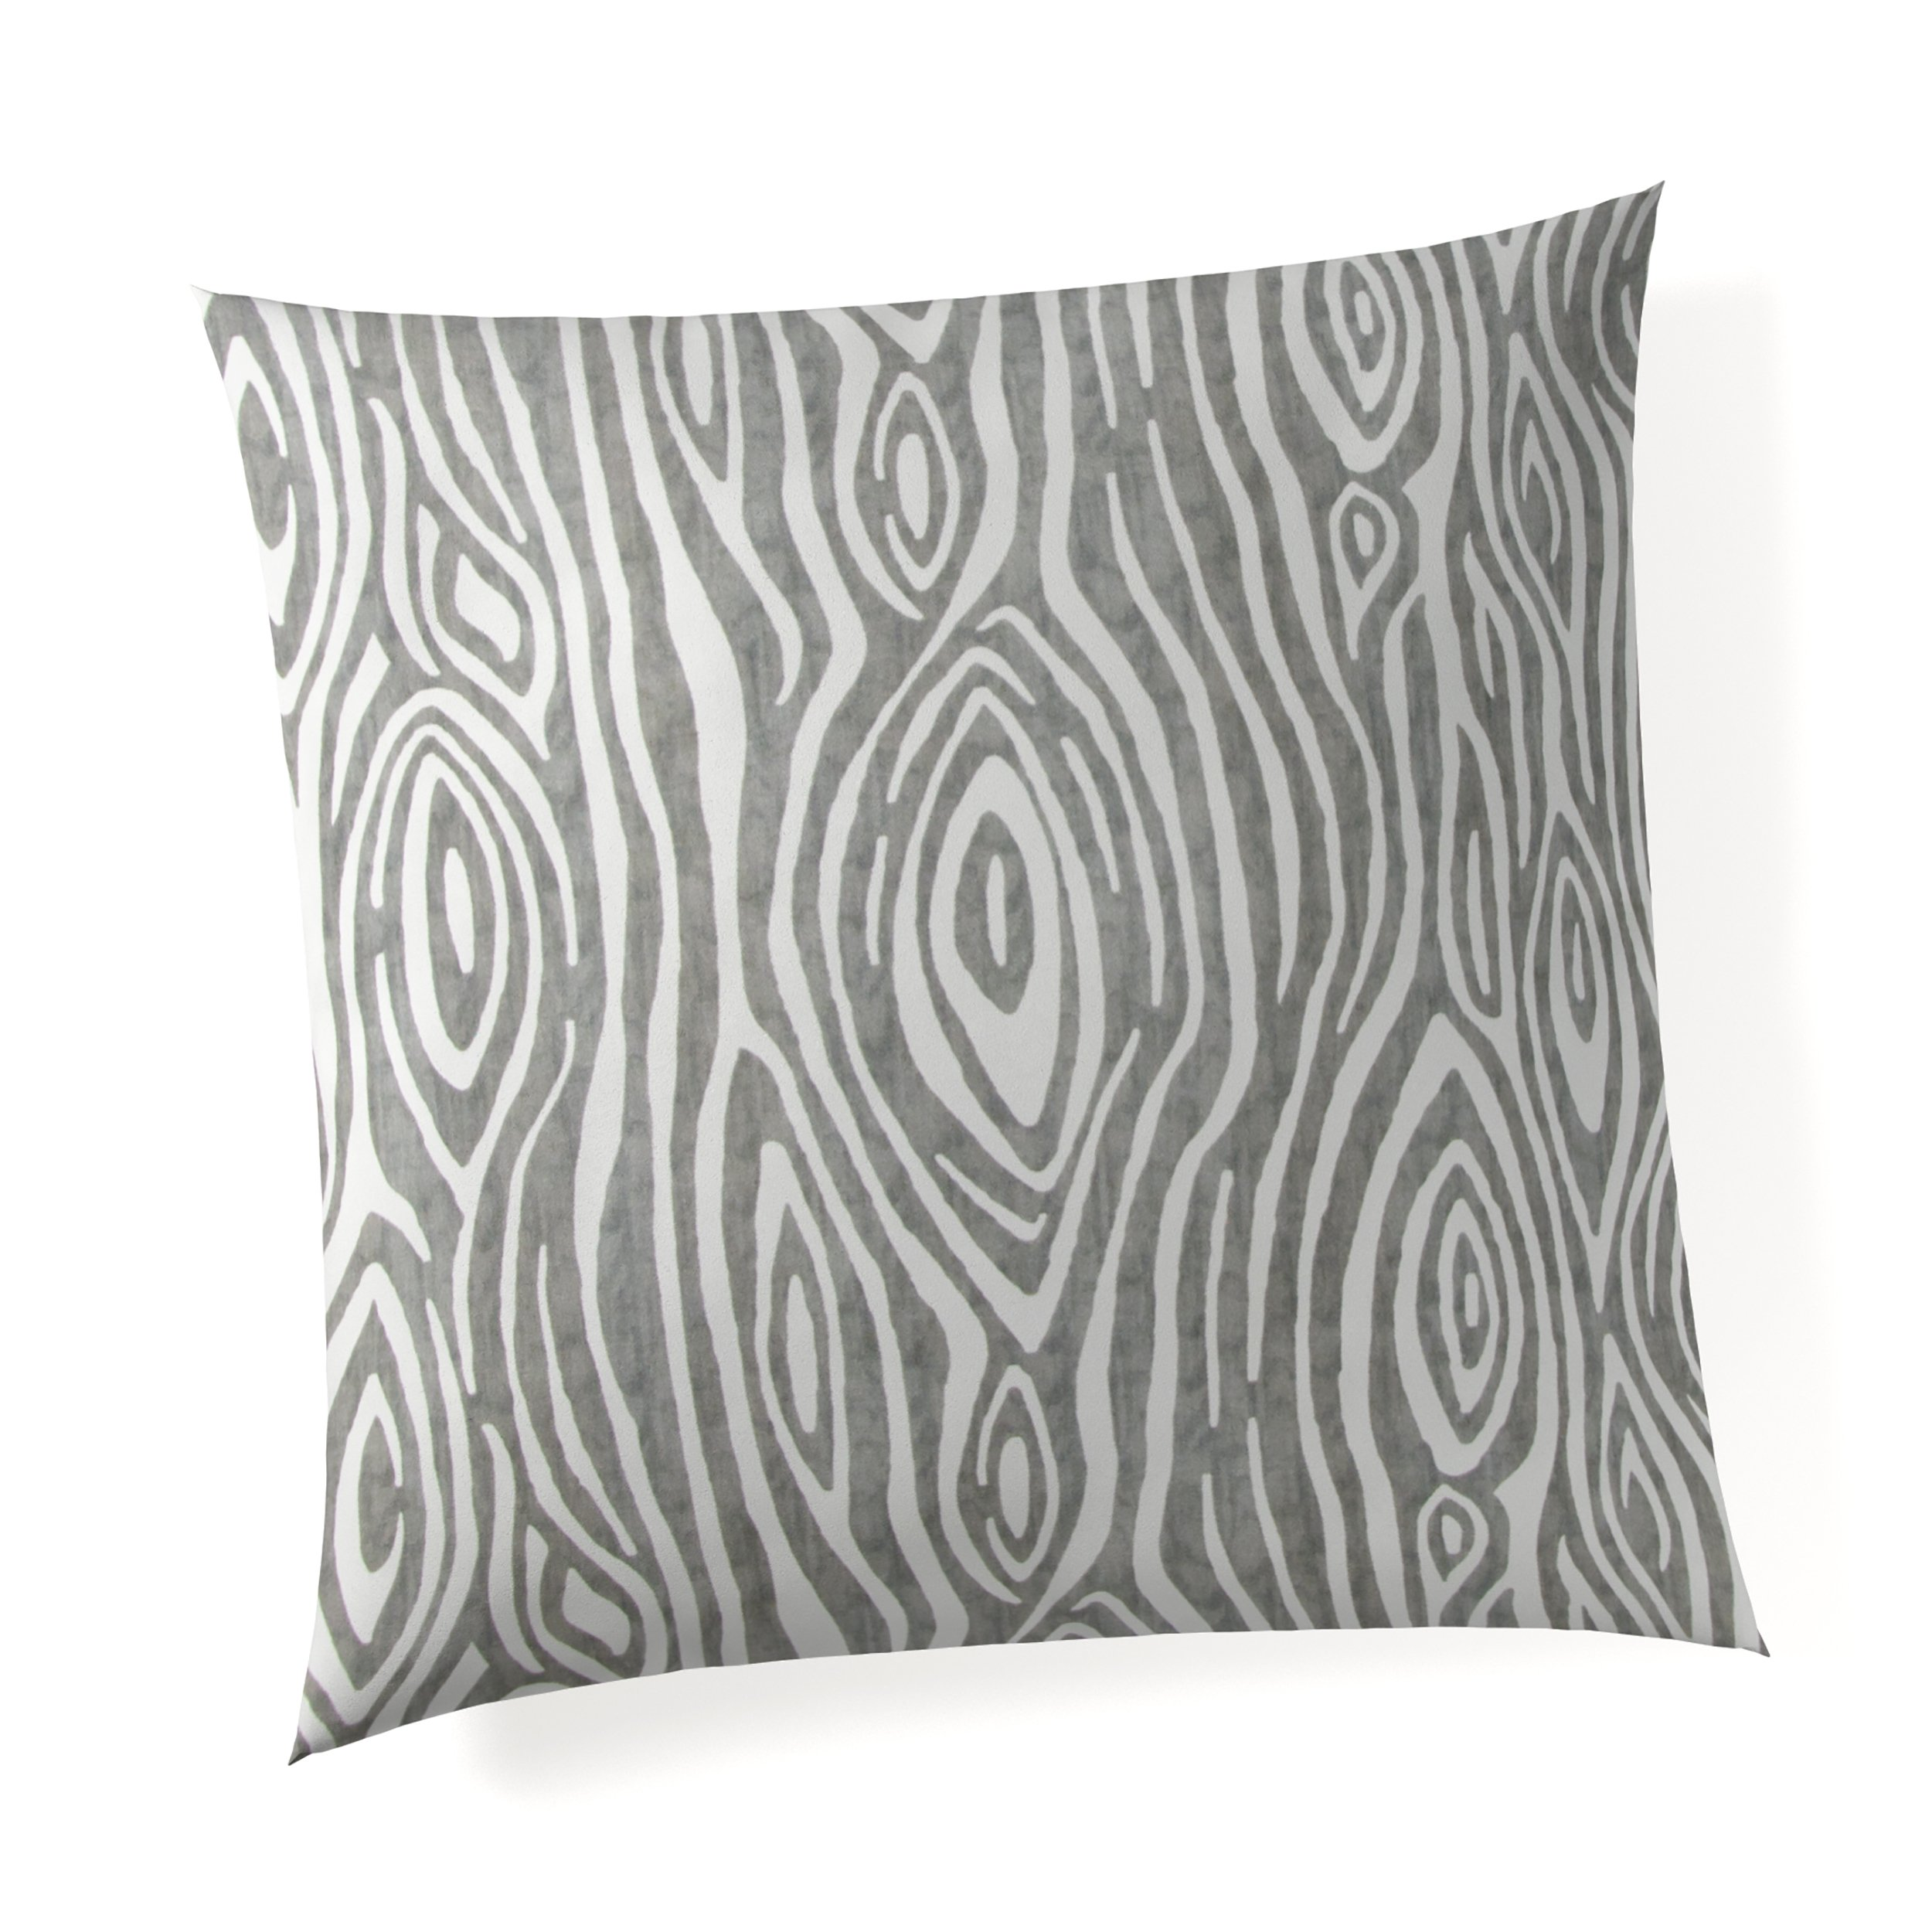 Glenna Jean Tree Trunk 18''x 18'' Pillow with Fill for Baby Nursery, Decorative Soft Cushion Square by Glenna Jean (Image #1)